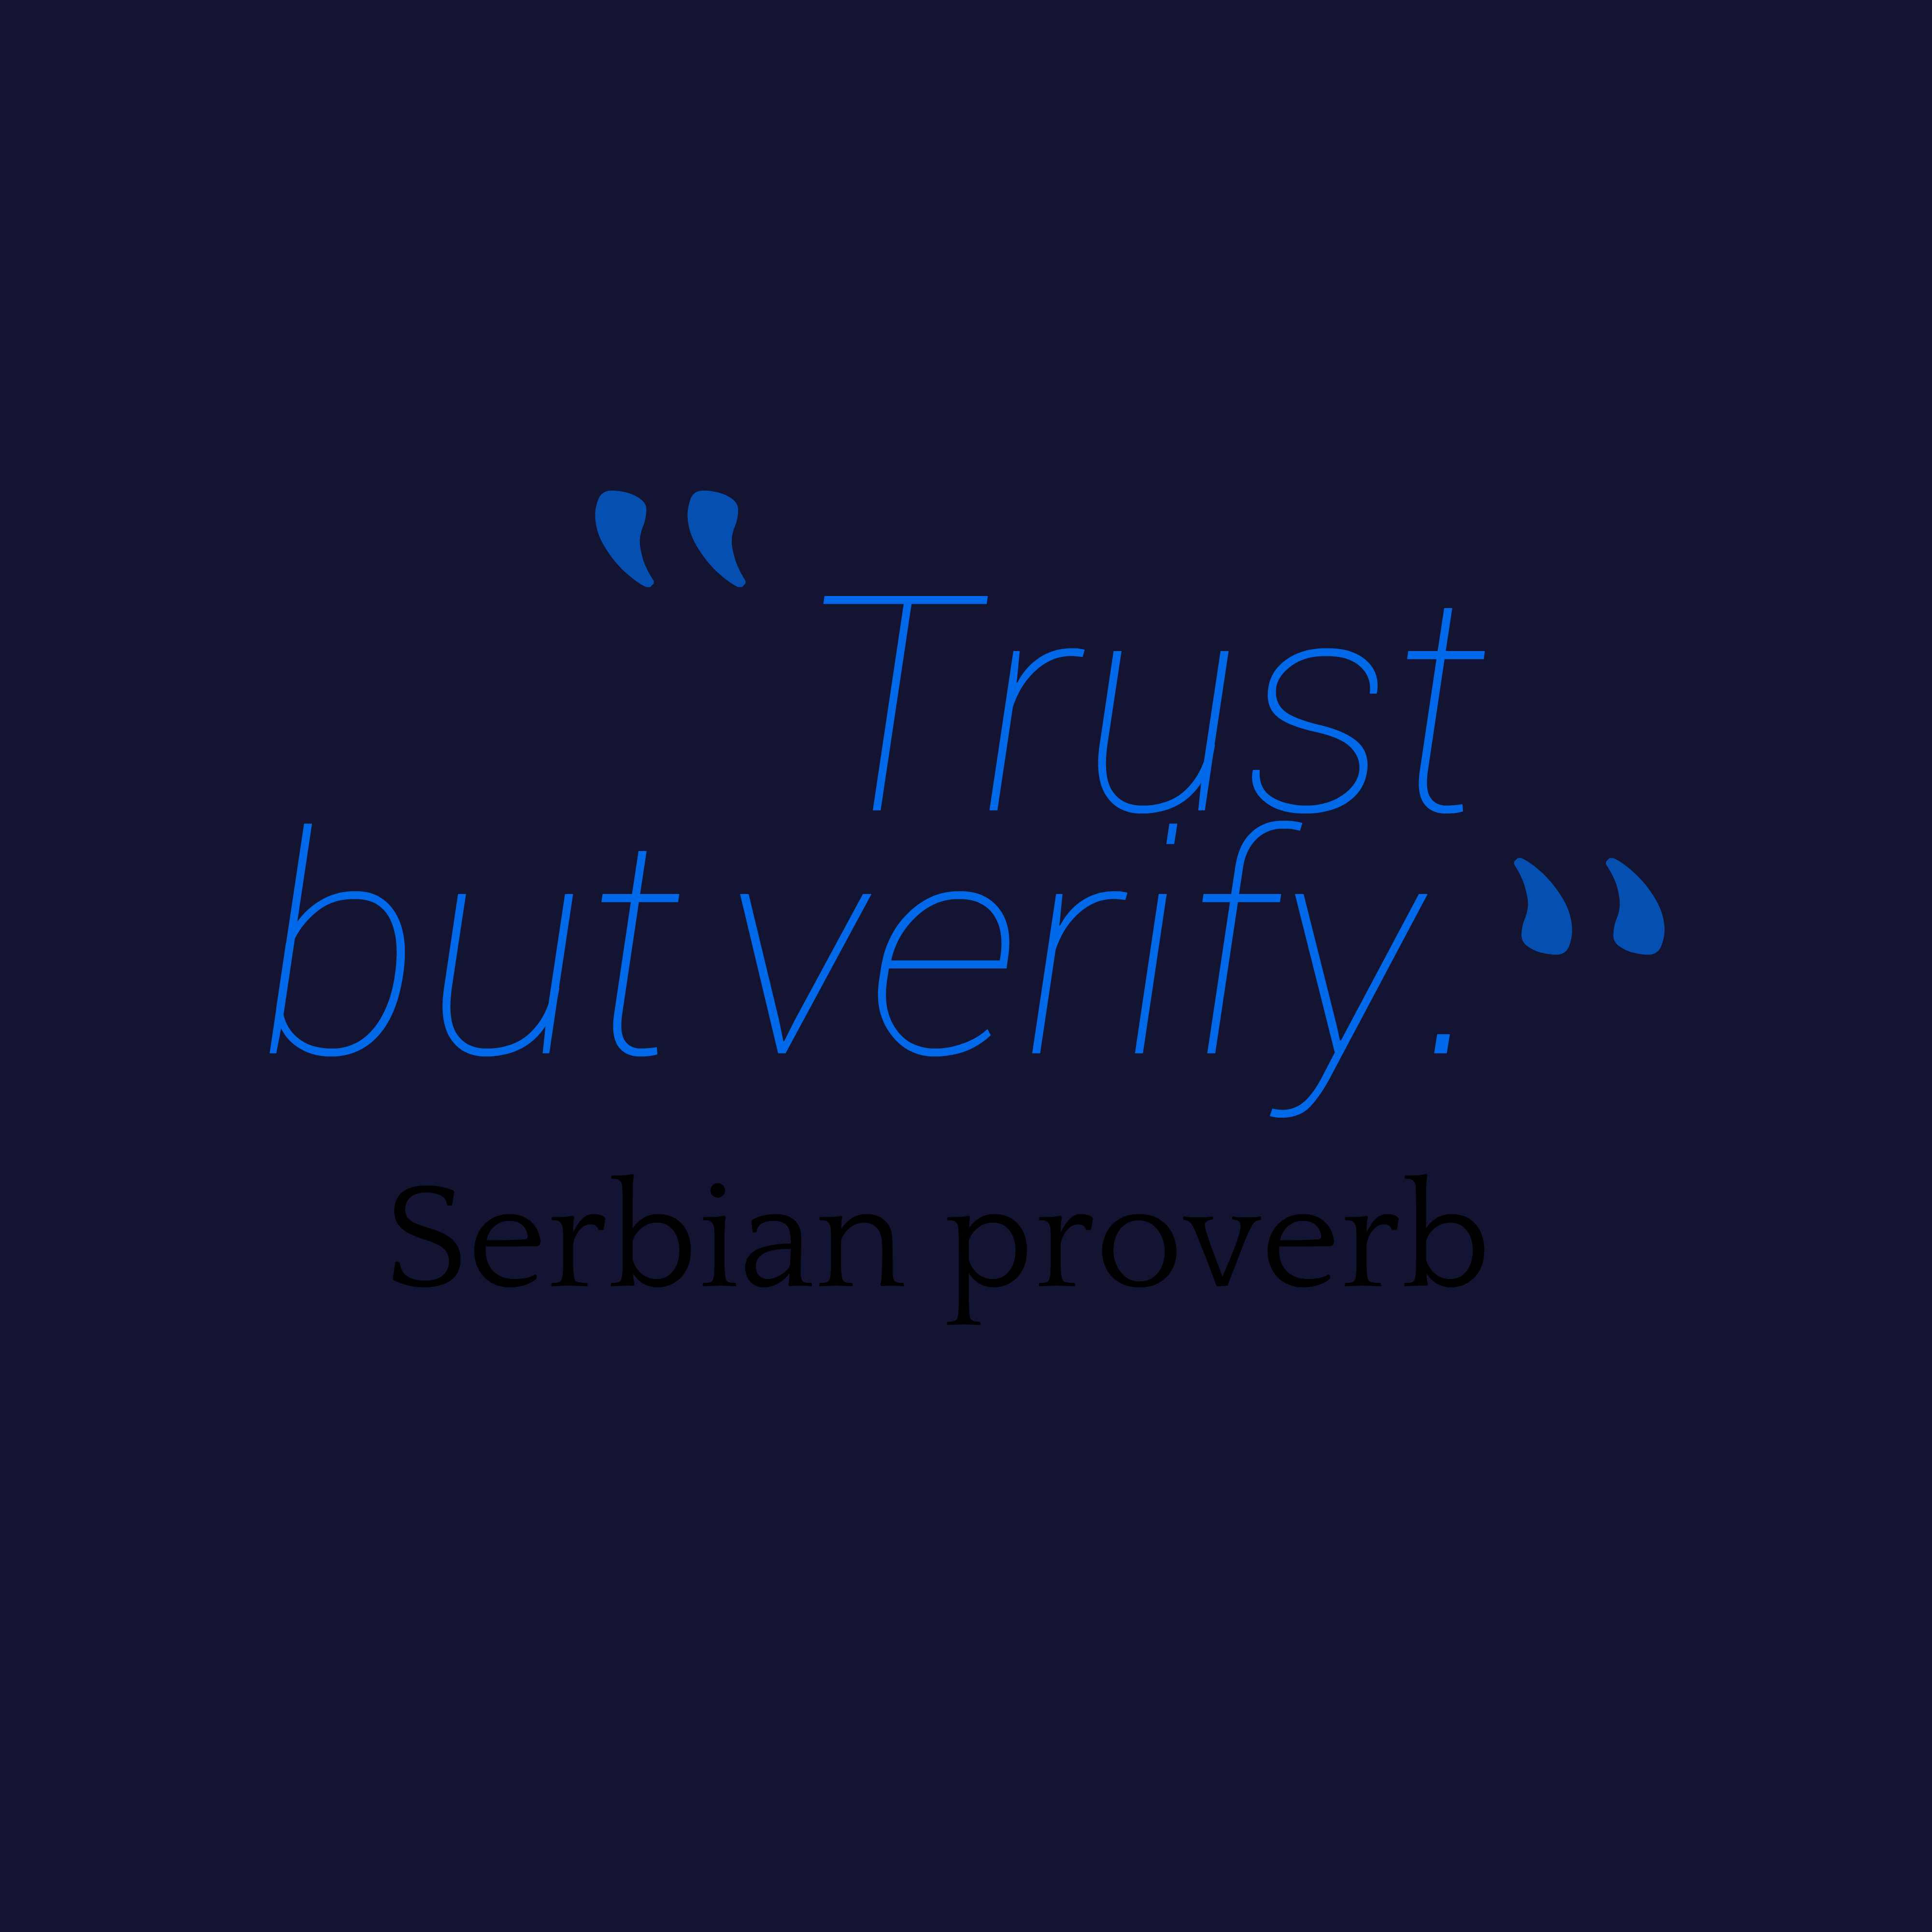 Quotes image of Trust but verify.